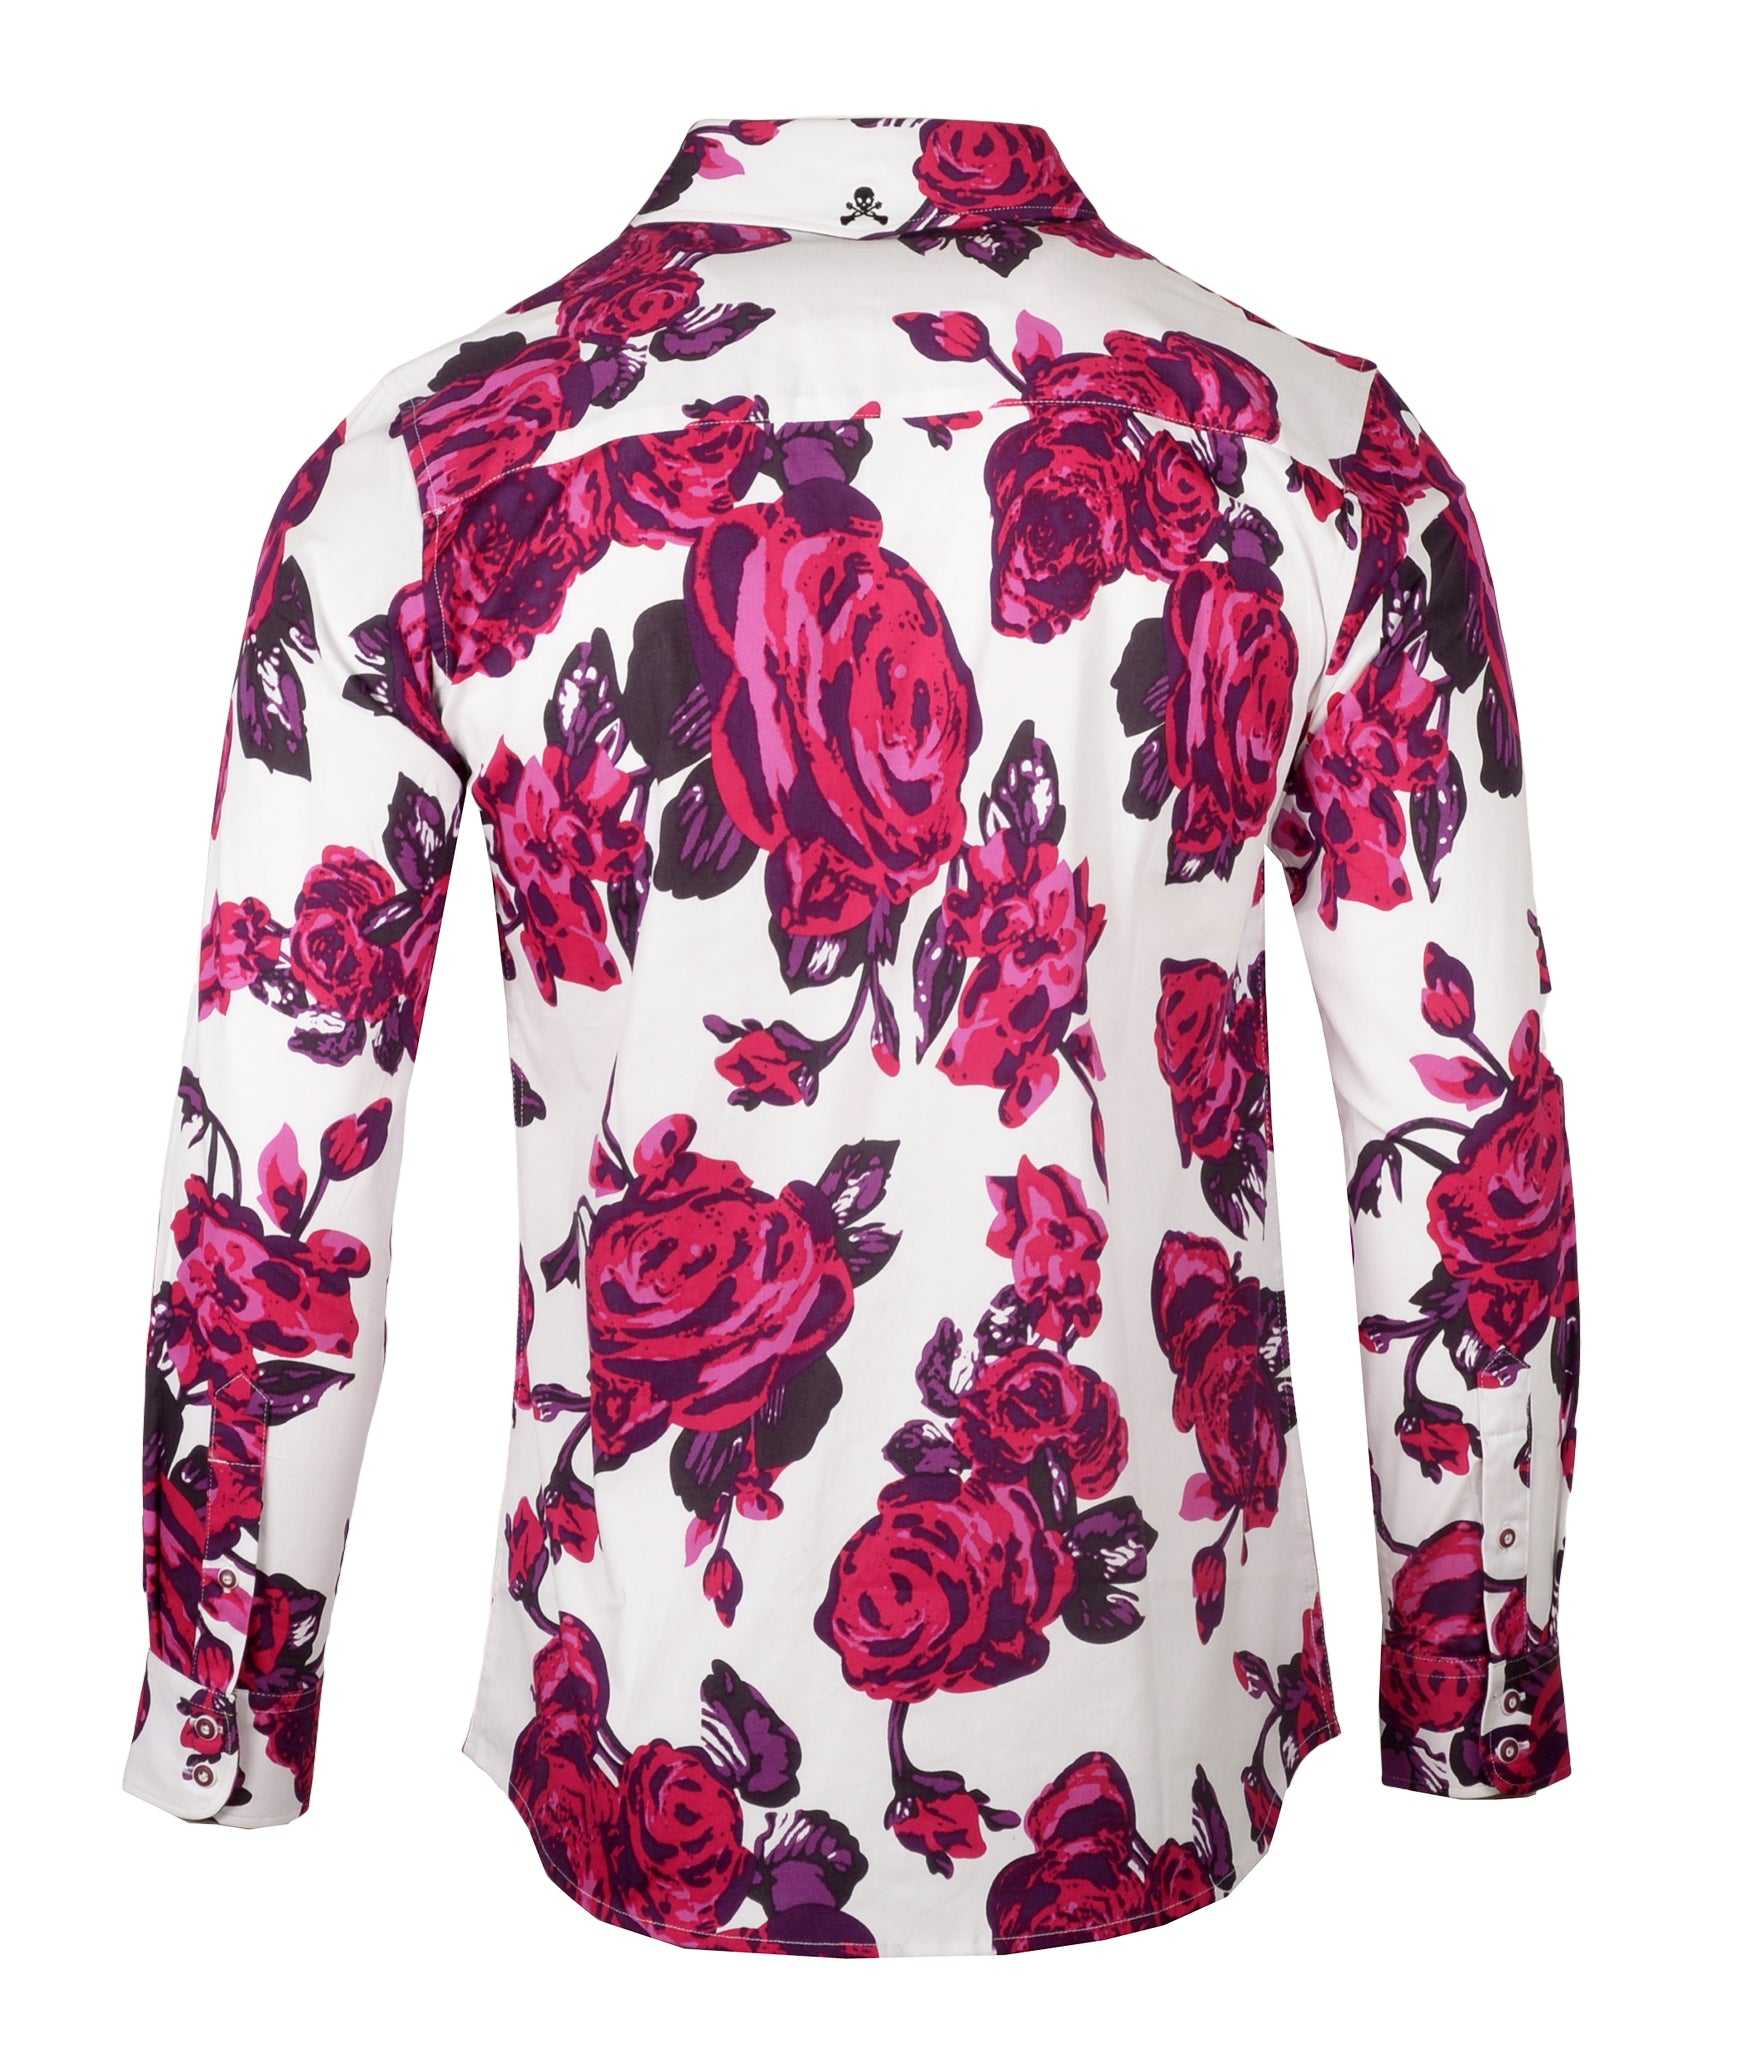 Men's Casual Fashion Button Up Shirt - Dead Flowers by Rock Roll n Soul